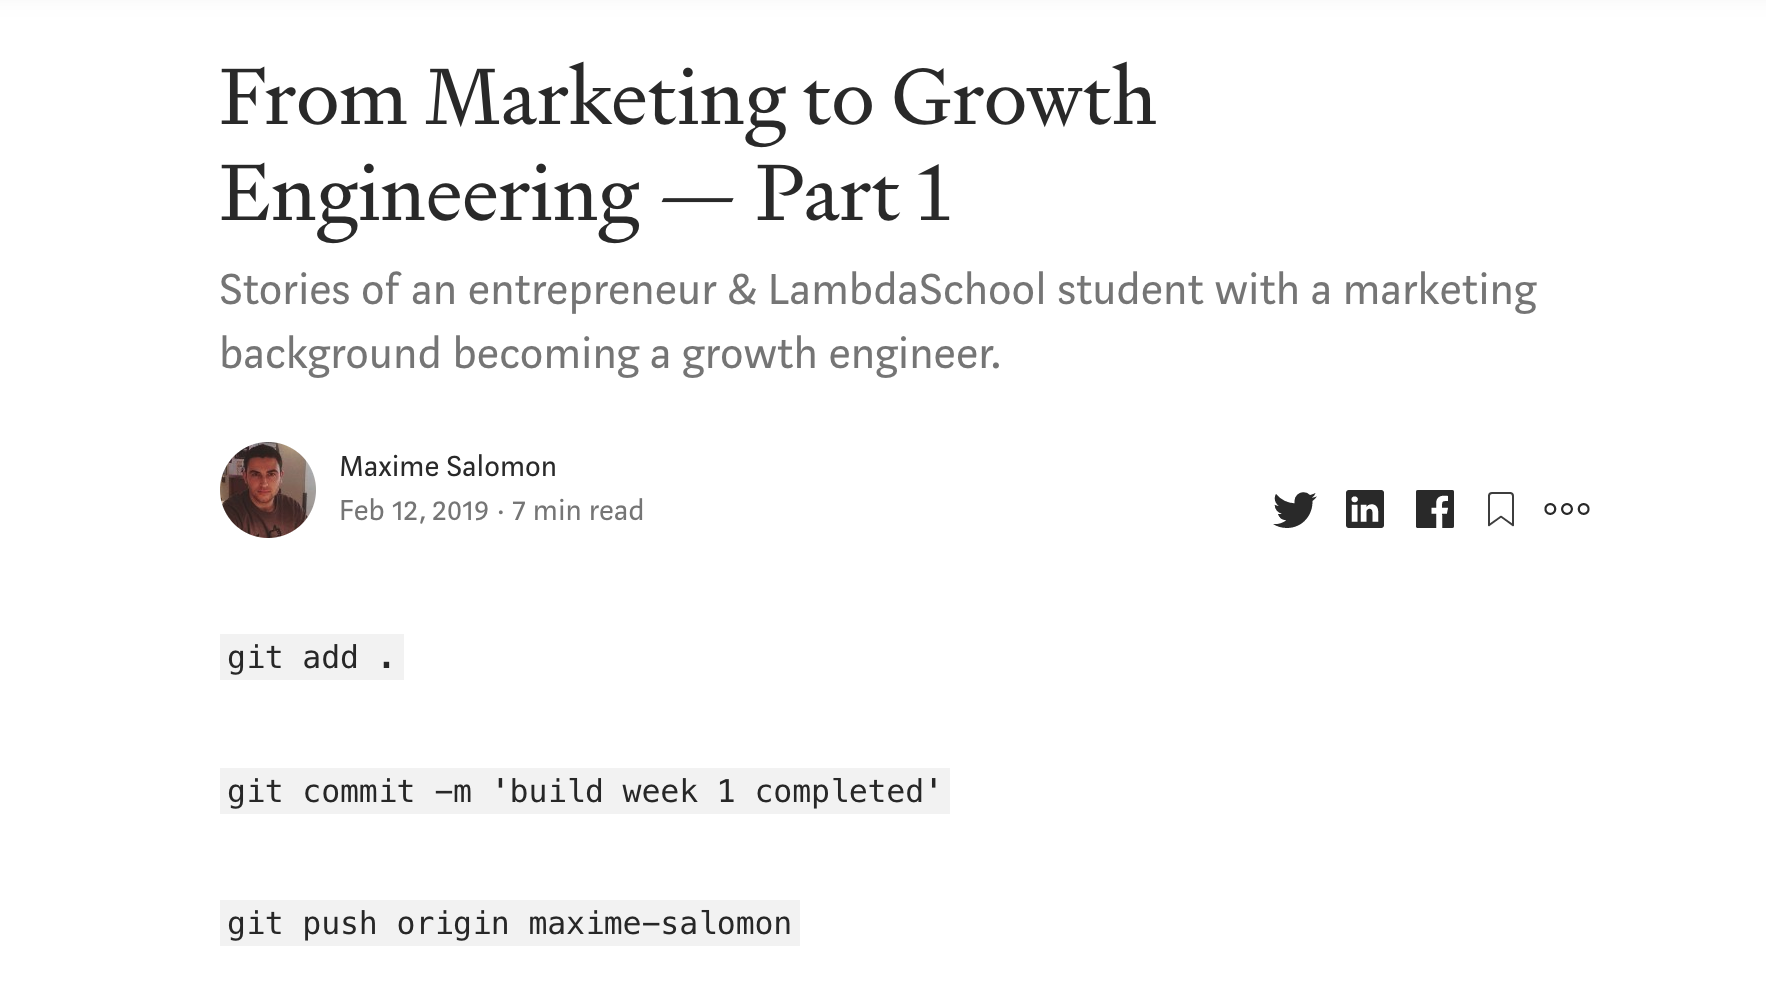 [From Marketing to Growth Engineering — Part 1](https://medium.com/@maximesalomon/from-marketing-to-growth-engineering-part-1-f9fea2bf8768)